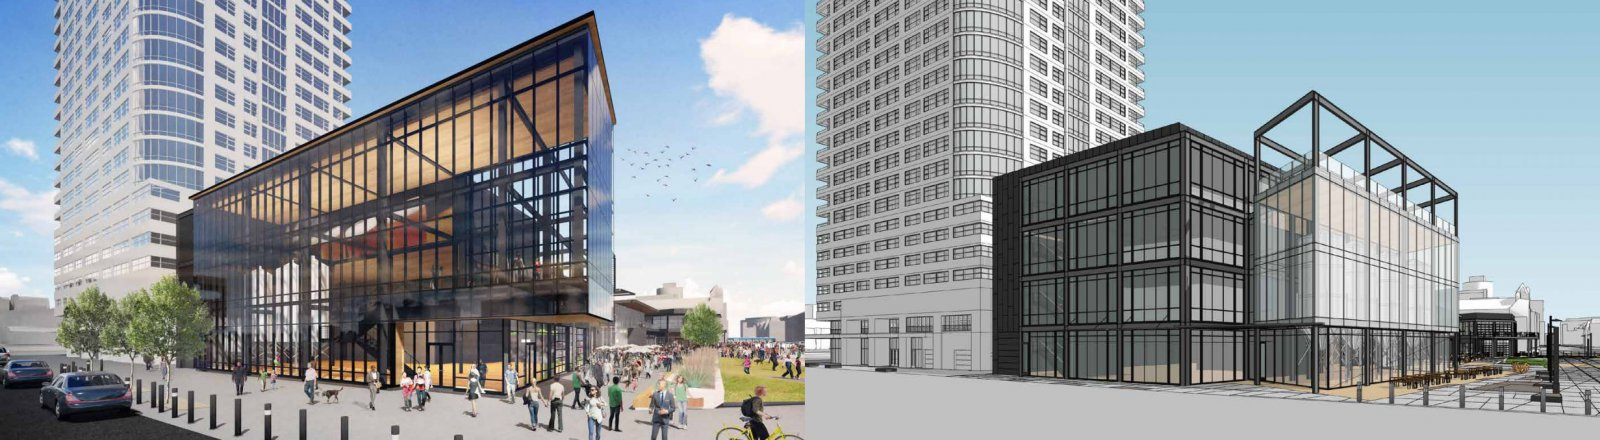 Live Block from Juneau Ave (Updated plan on left)